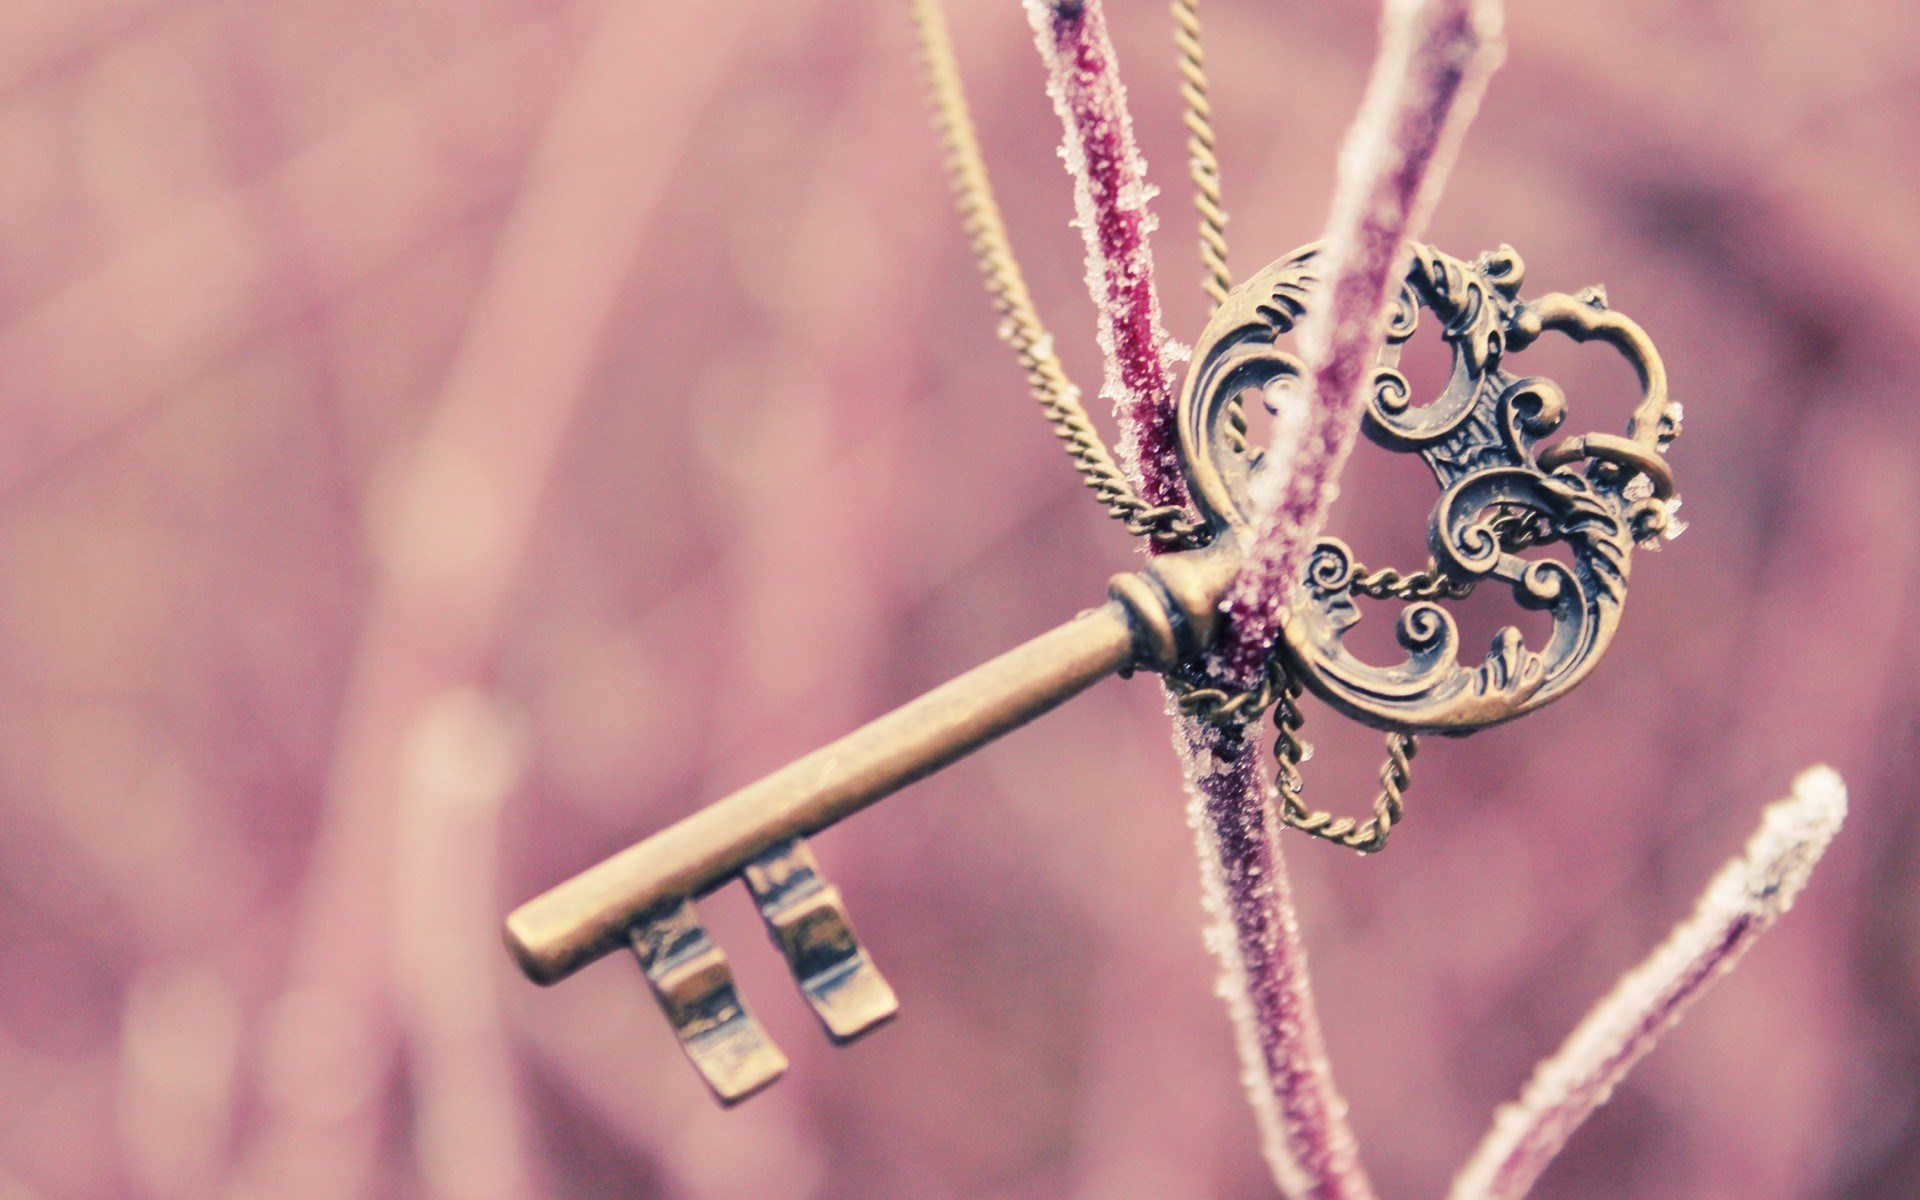 Frozen Twig Key Necklace HD Wallpaper